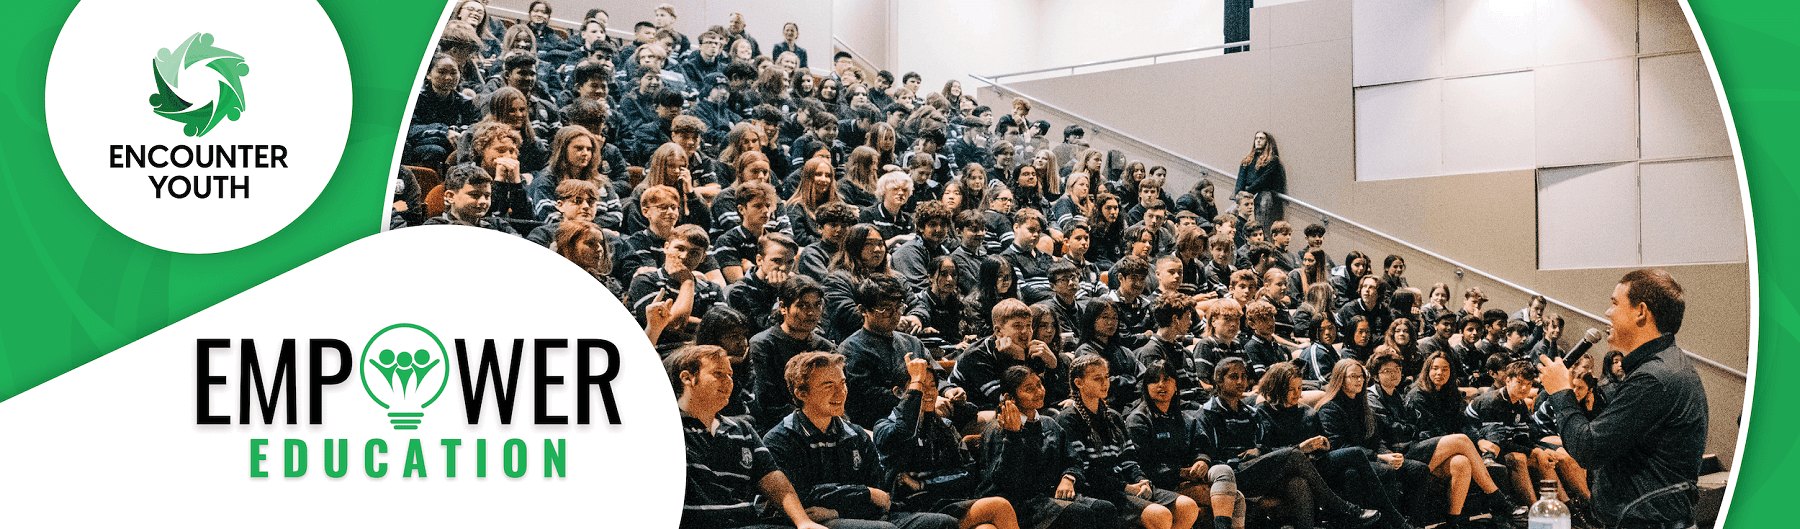 Encounter Youth Education, Banner Image